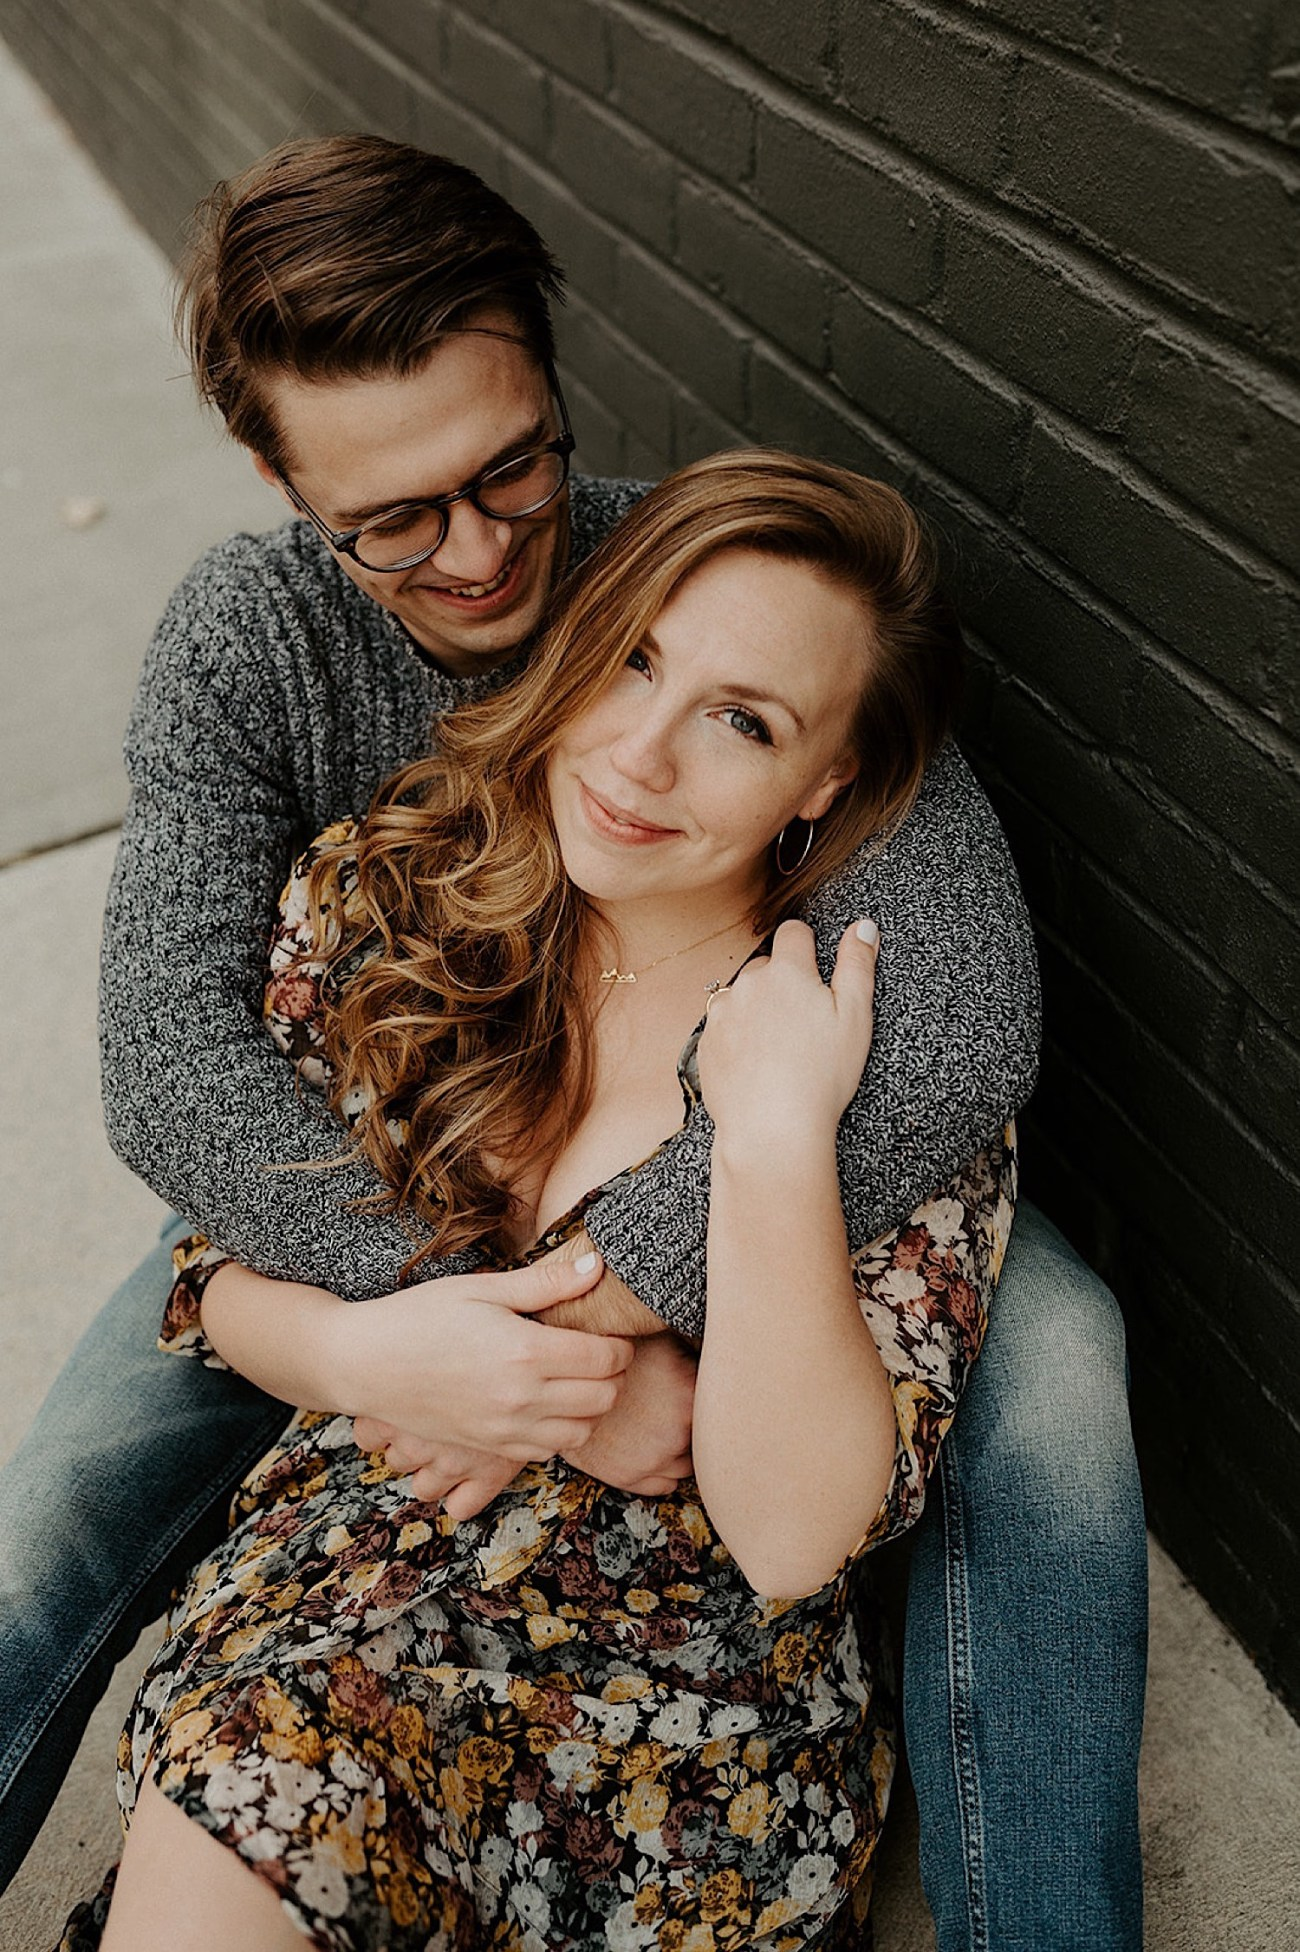 120 LIC Engagement Photos In Home Engagement Photos Brooklyn Wedding Photographer